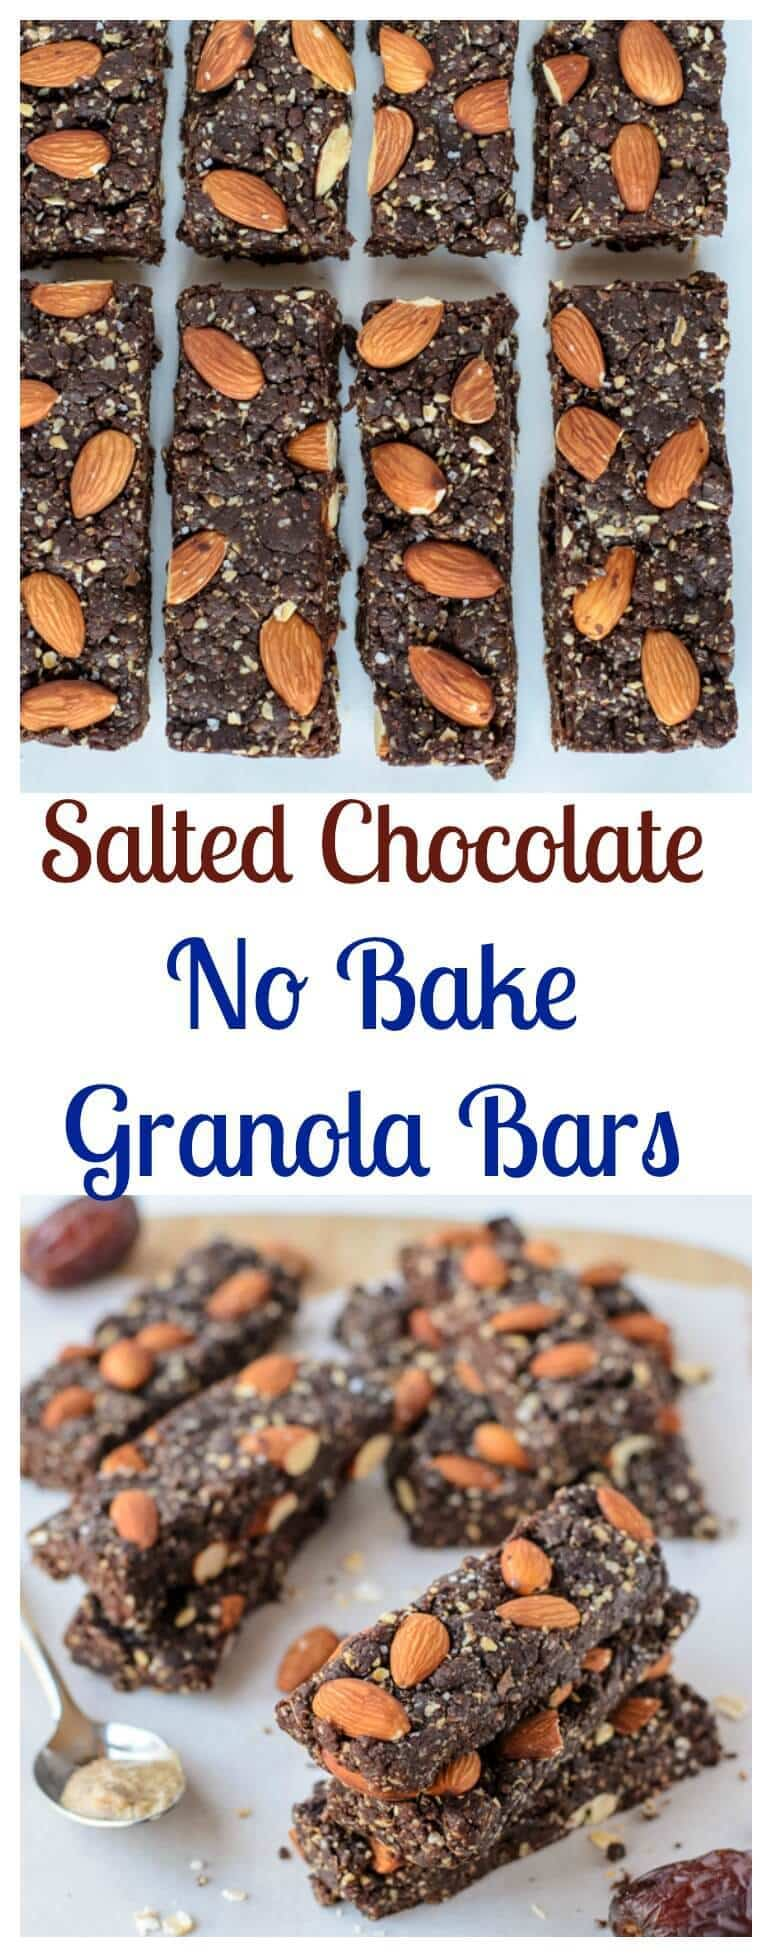 Salted Chocolate Almond No Bake Granola Bars. Heathy and tastes just like a chocolate brownie or Larabar. (vegan, gluten free)